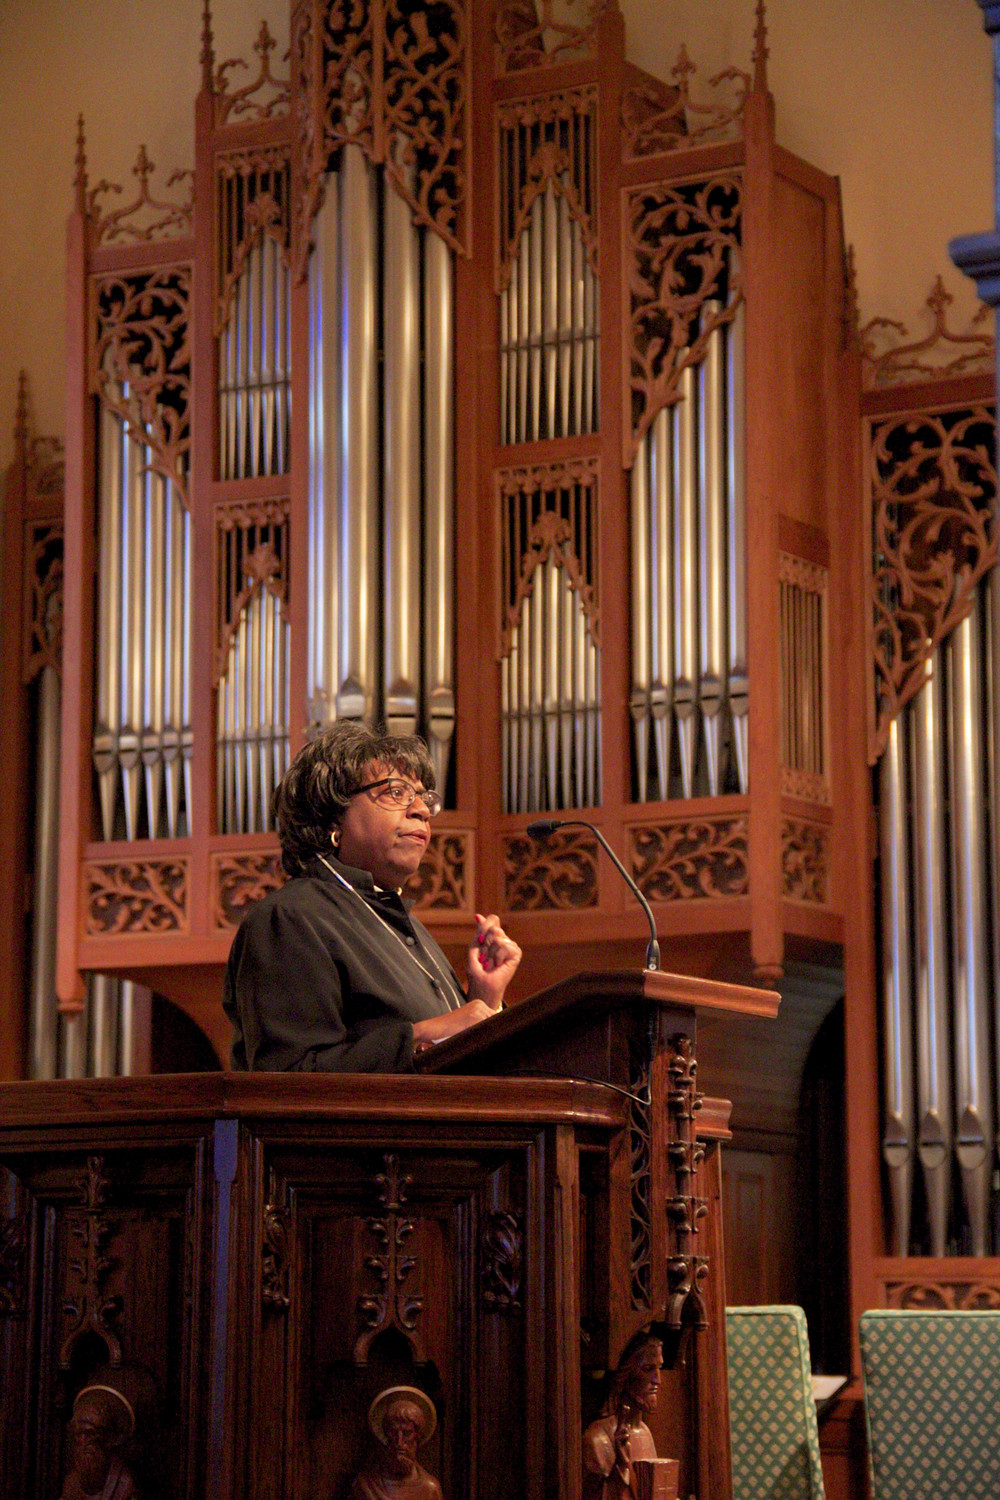 The Rev. Linda Vanager's sermon honored the Rev. Dr. Martin Luther King Jr., but also called for parishioners to actively follow his teachings.